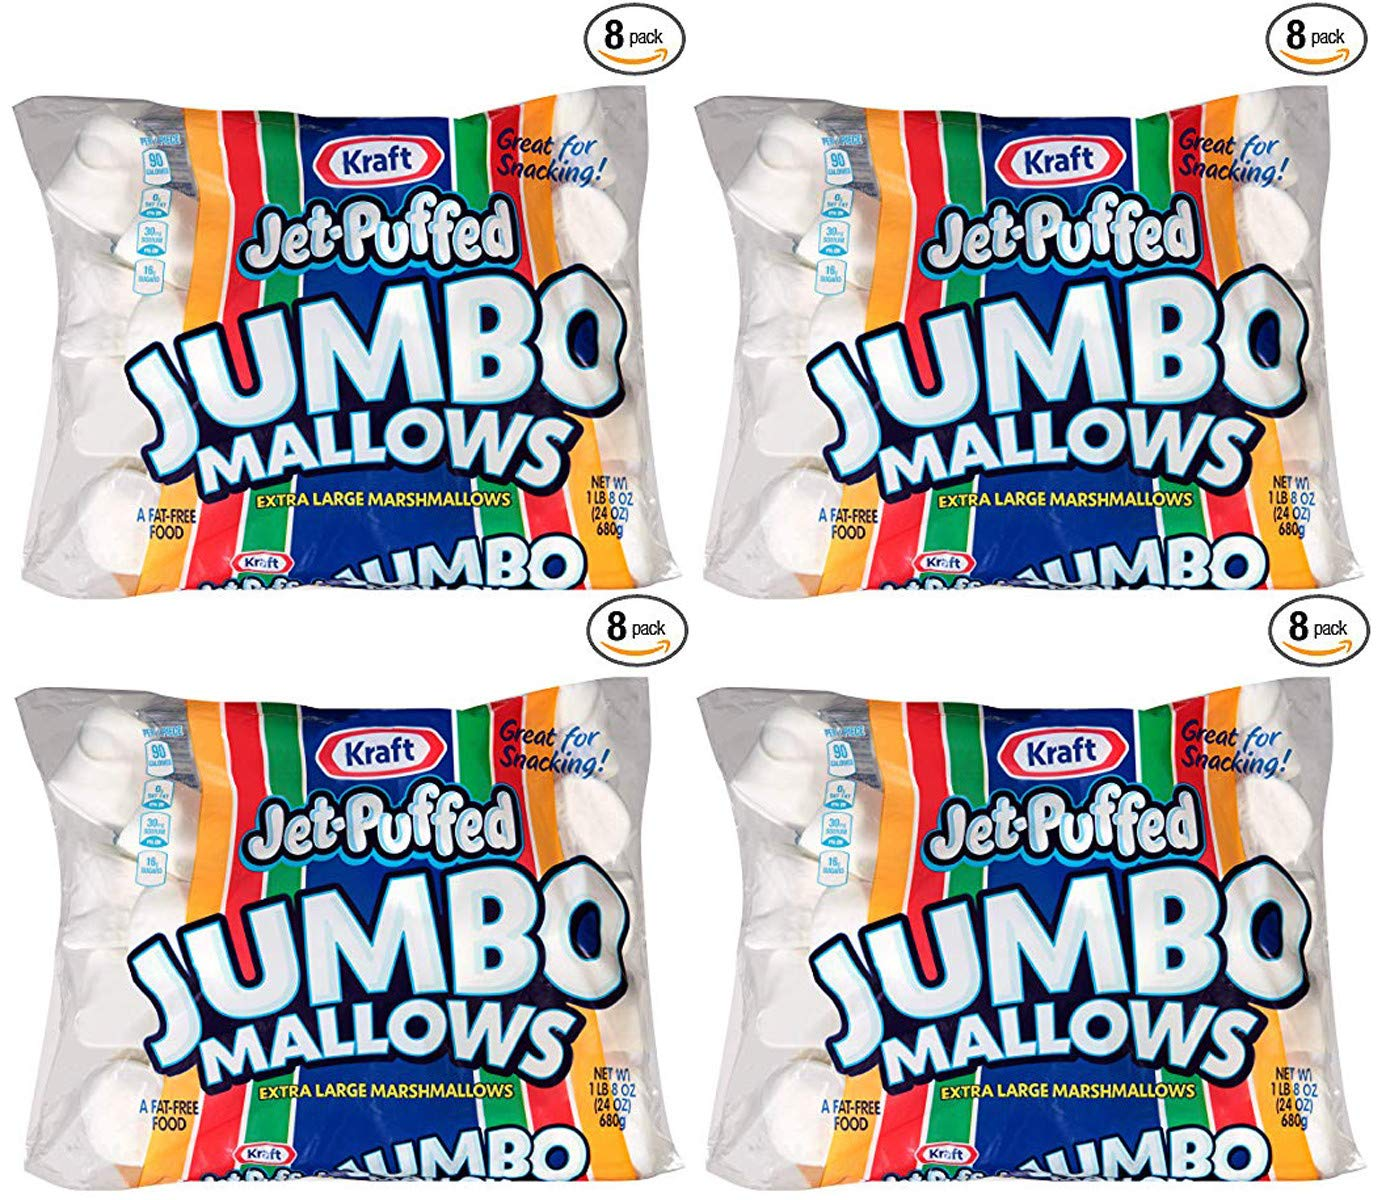 vfr Jumbo Marshmallows, 24 oz Bag, 4 Packs (8 Pack) by Jet-Puffed